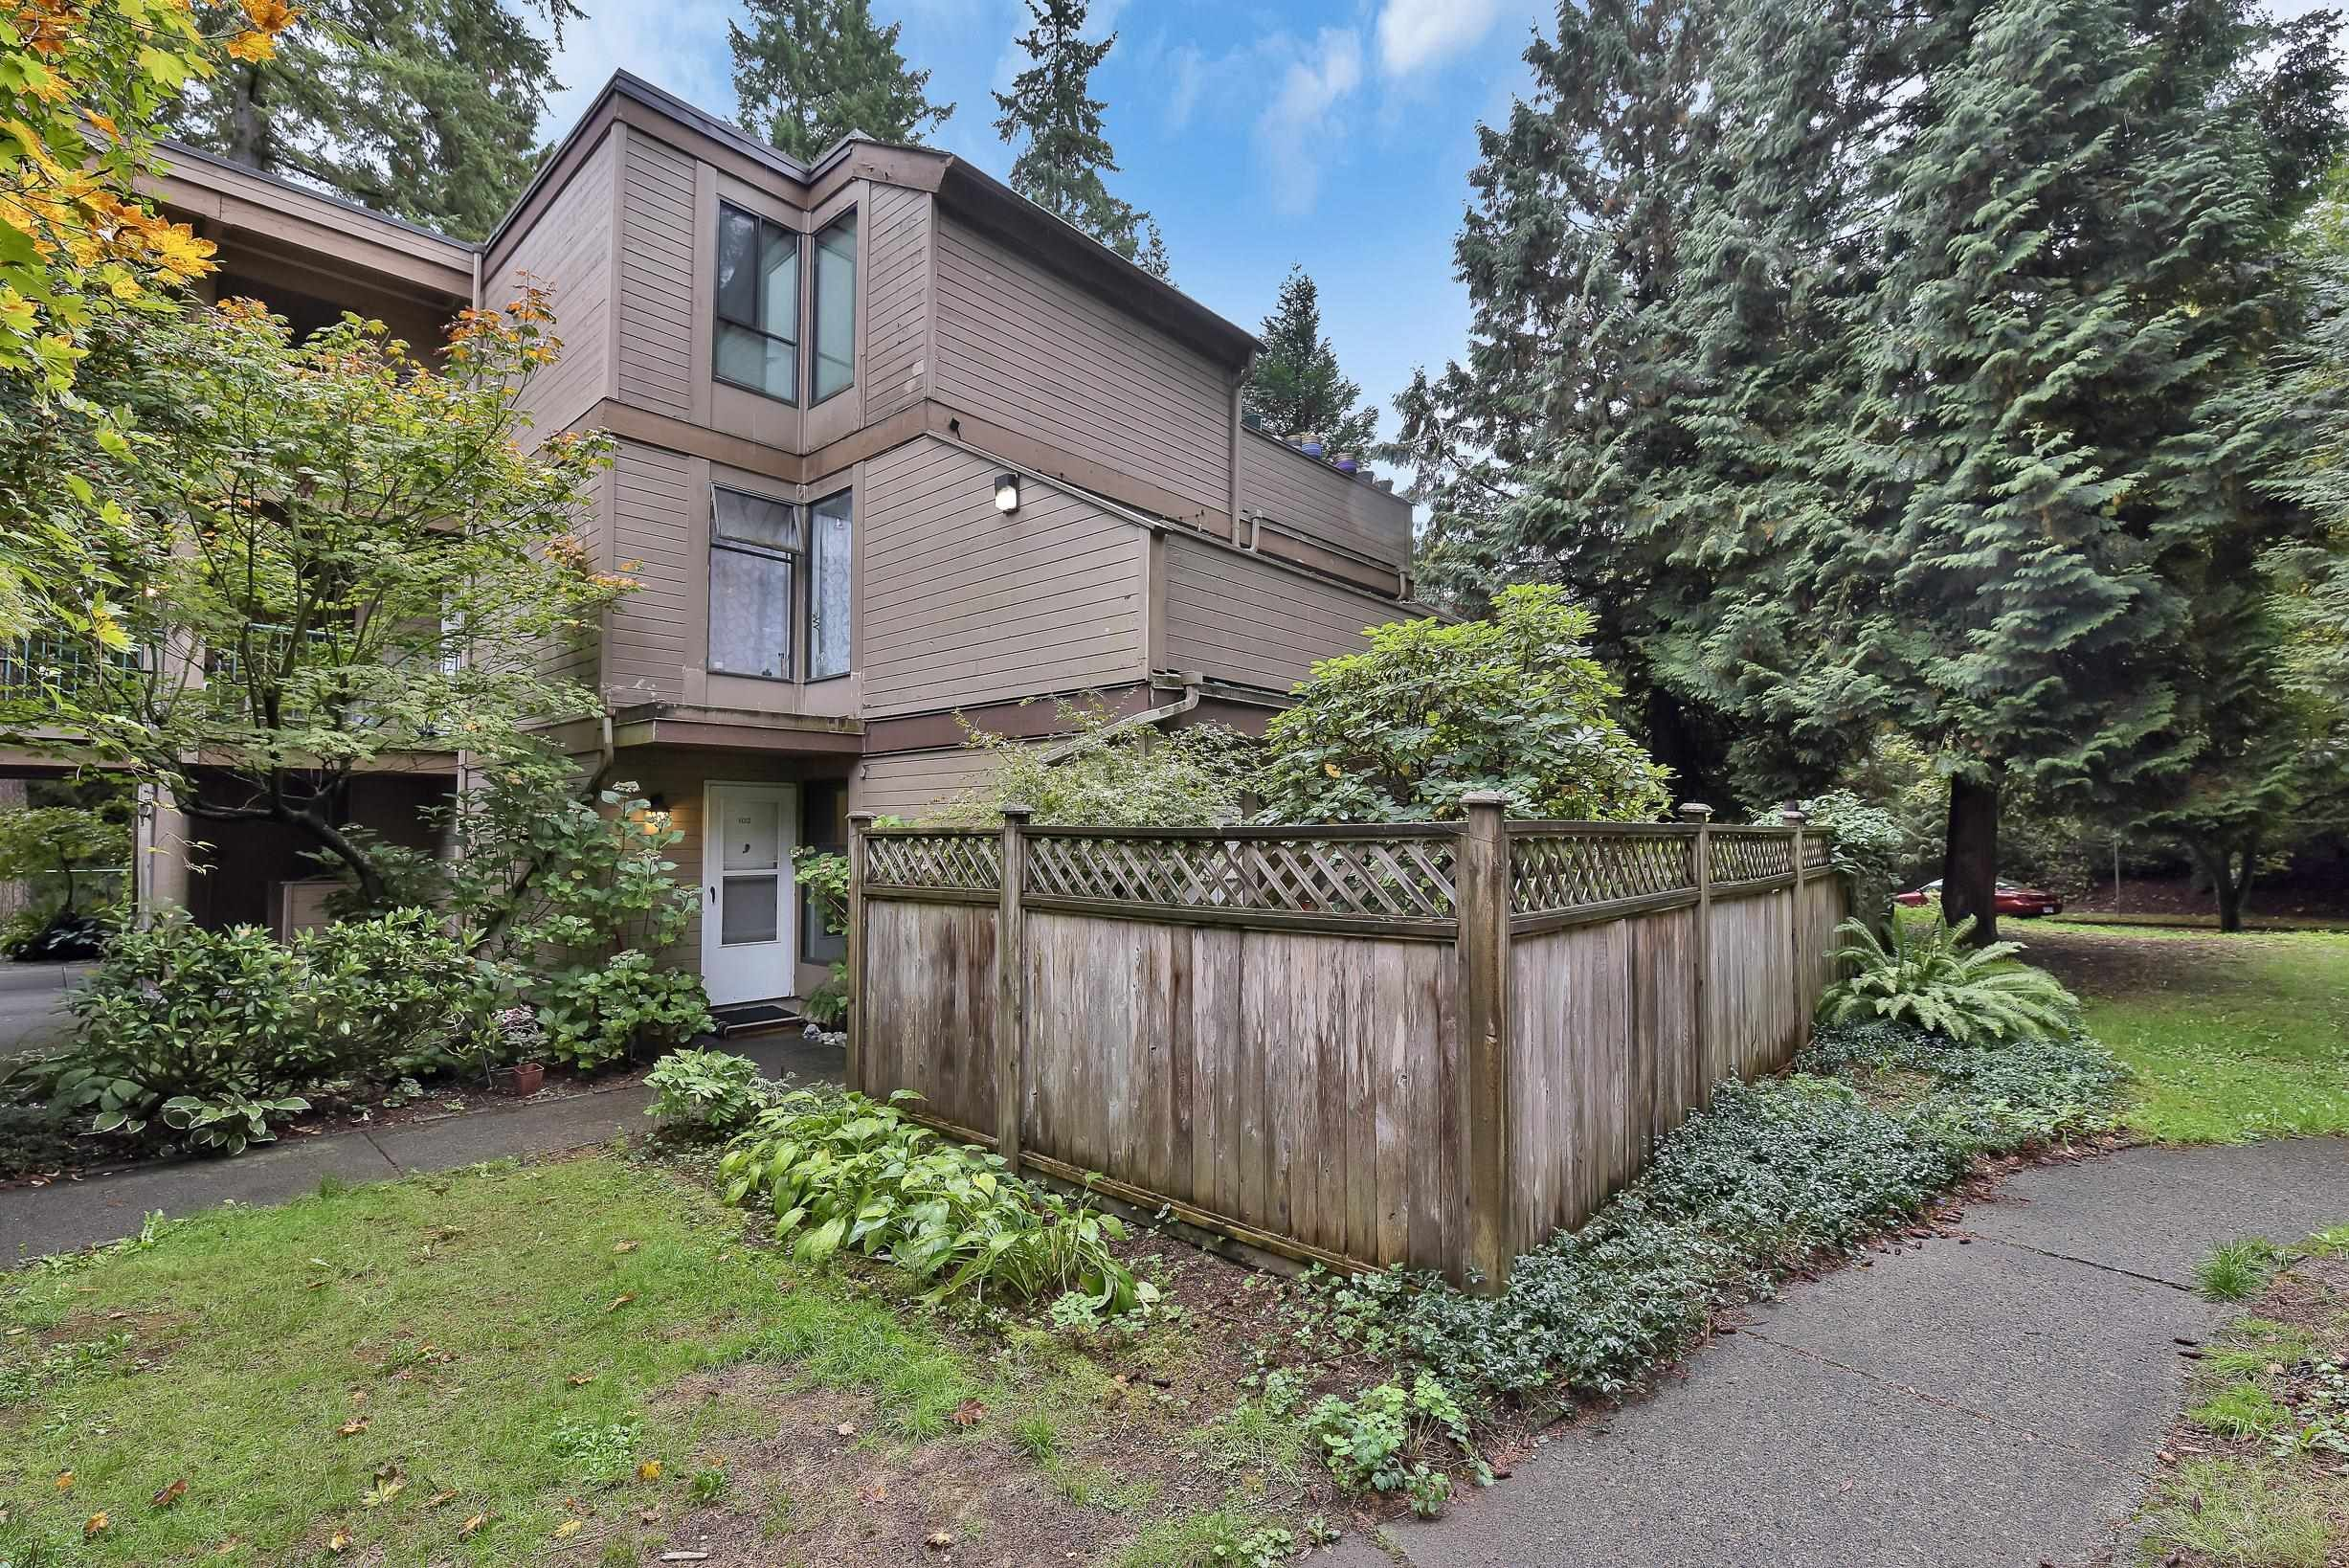 """Main Photo: 102 8686 CENTAURUS Circle in Burnaby: Simon Fraser Hills Townhouse for sale in """"Mountainwood"""" (Burnaby North)  : MLS®# R2621264"""